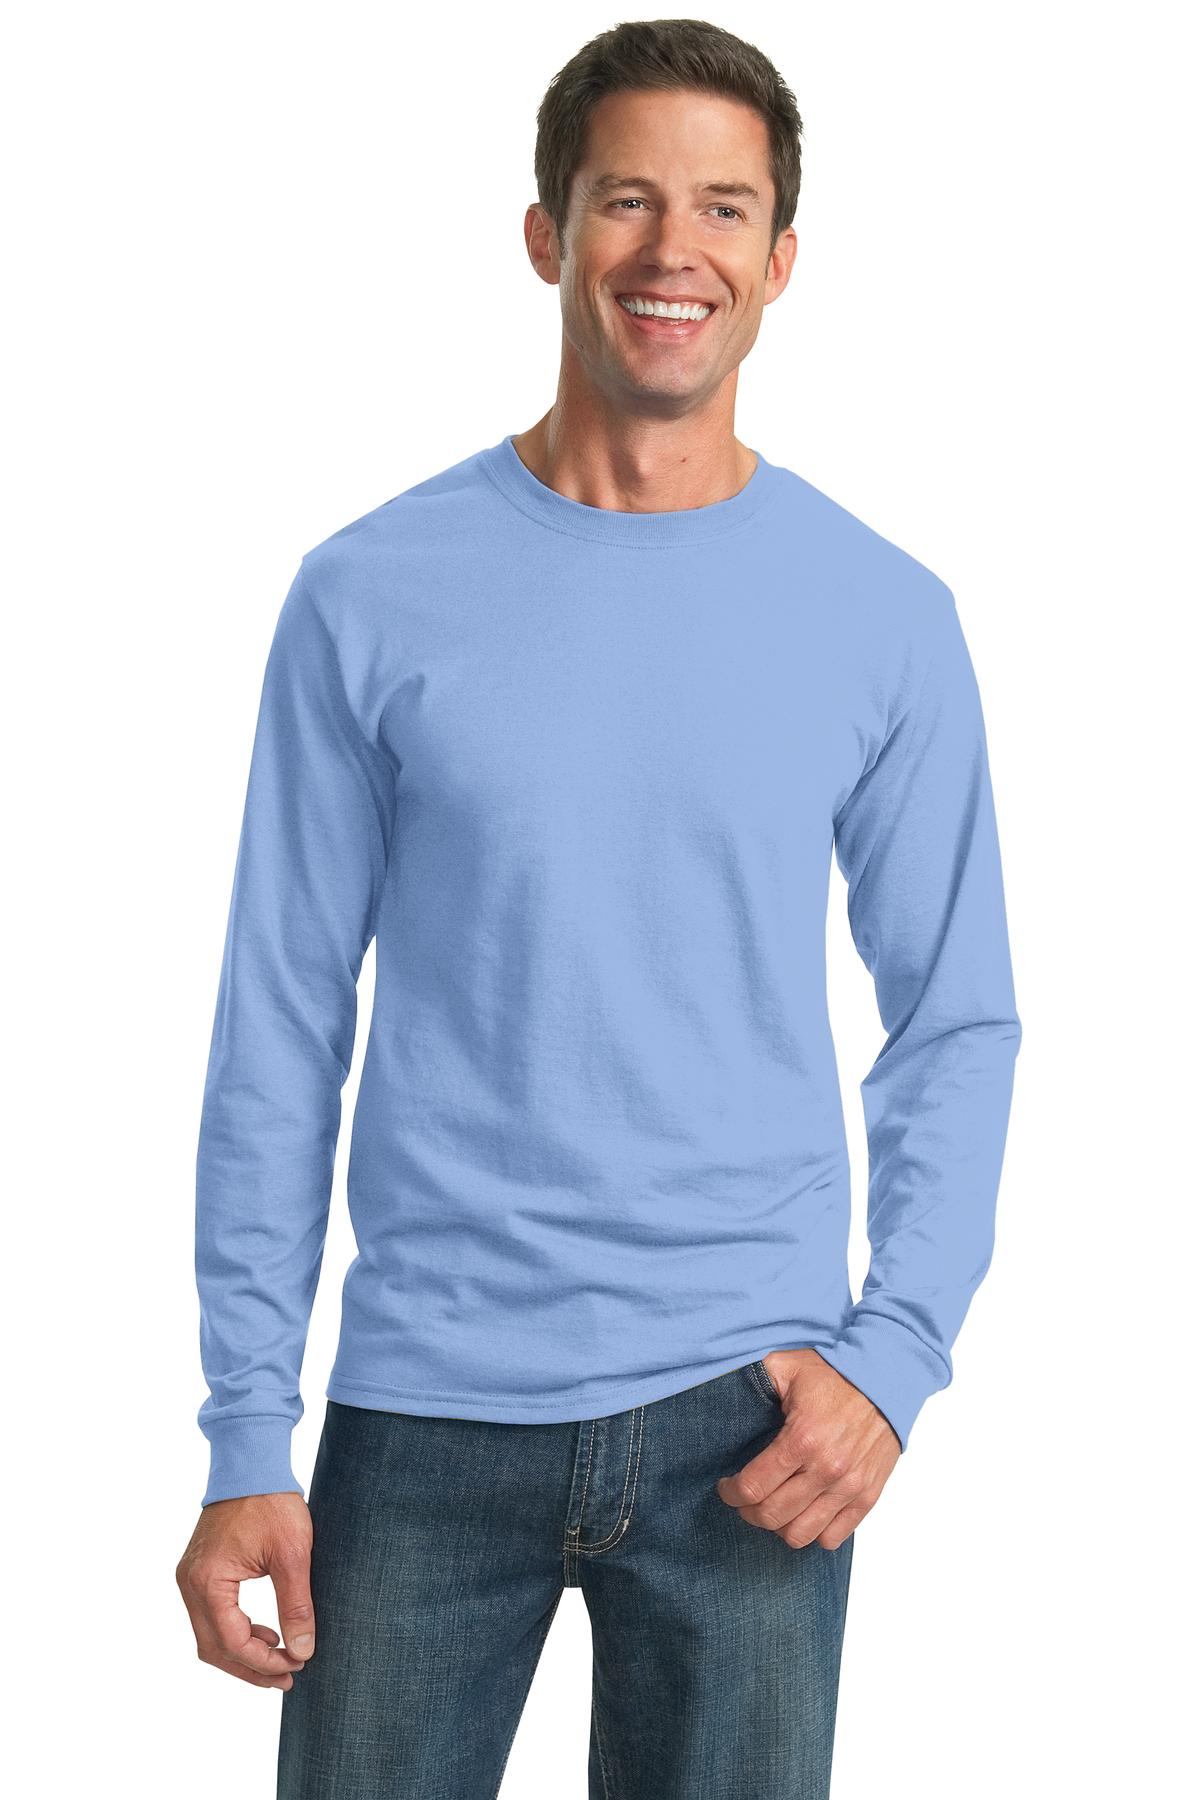 Jerzees dri power active cotton poly long sleeve dry fit t Light blue t shirt mens